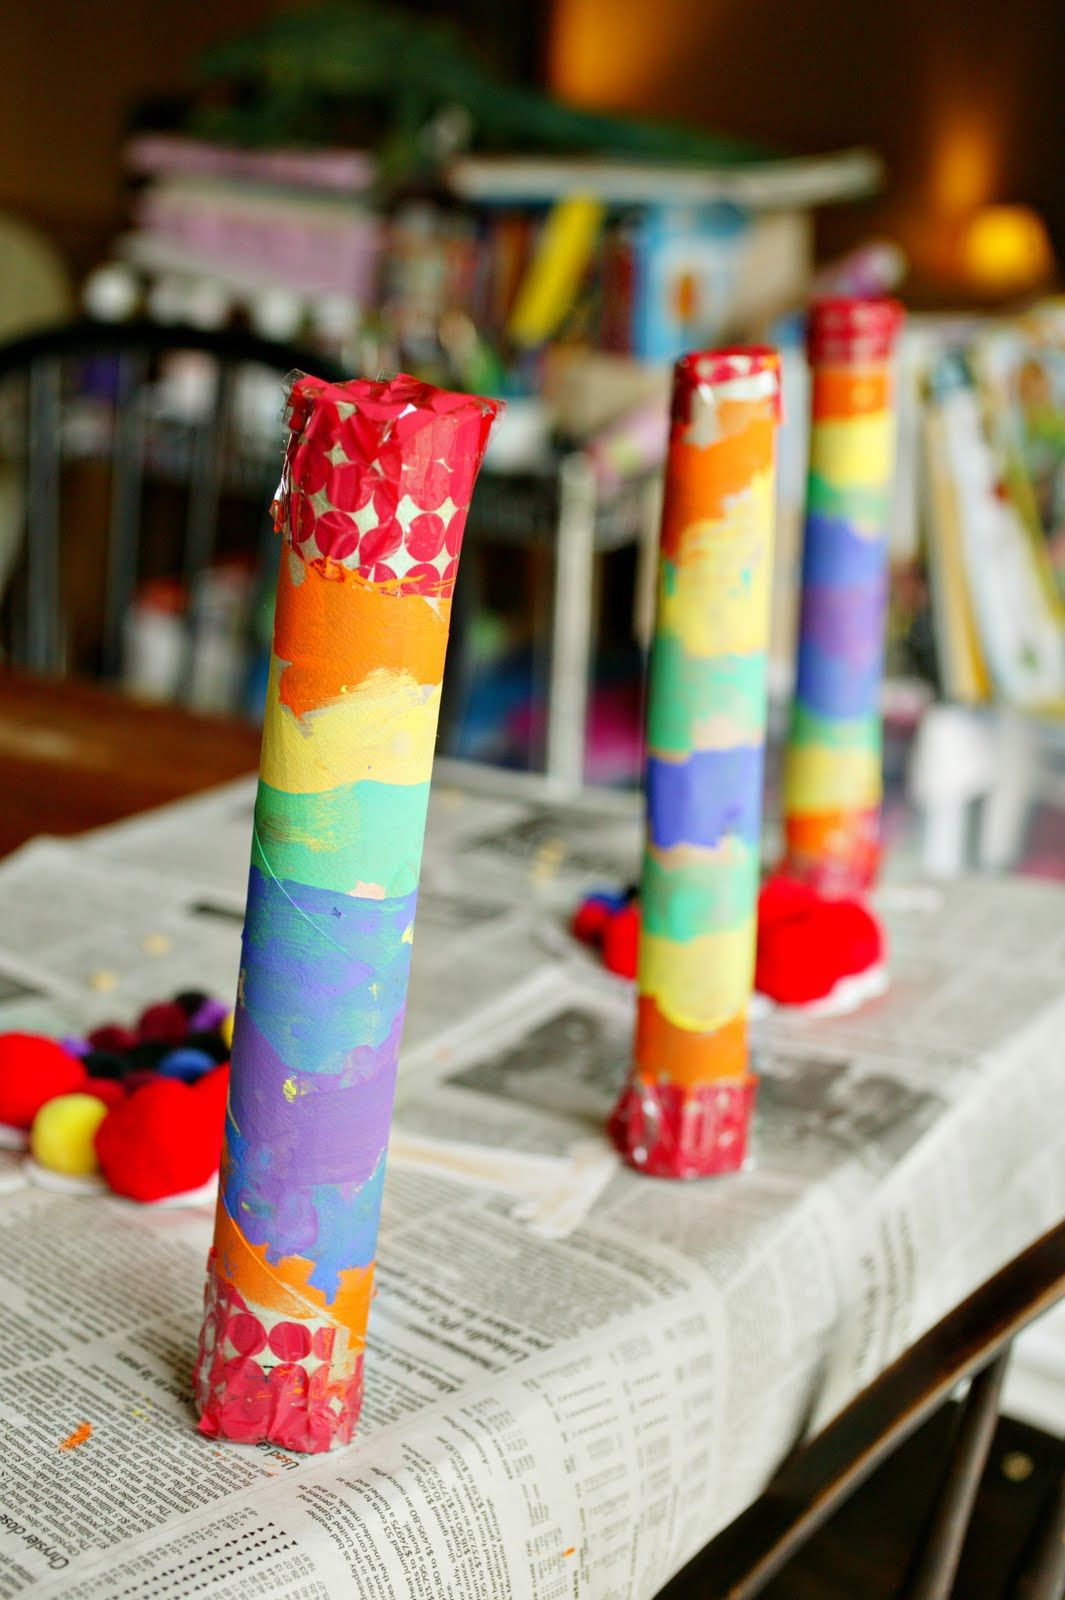 Preschool rain stick craft - Find This Pin And More On Play Things Rainbow Shakers Rain Sticks